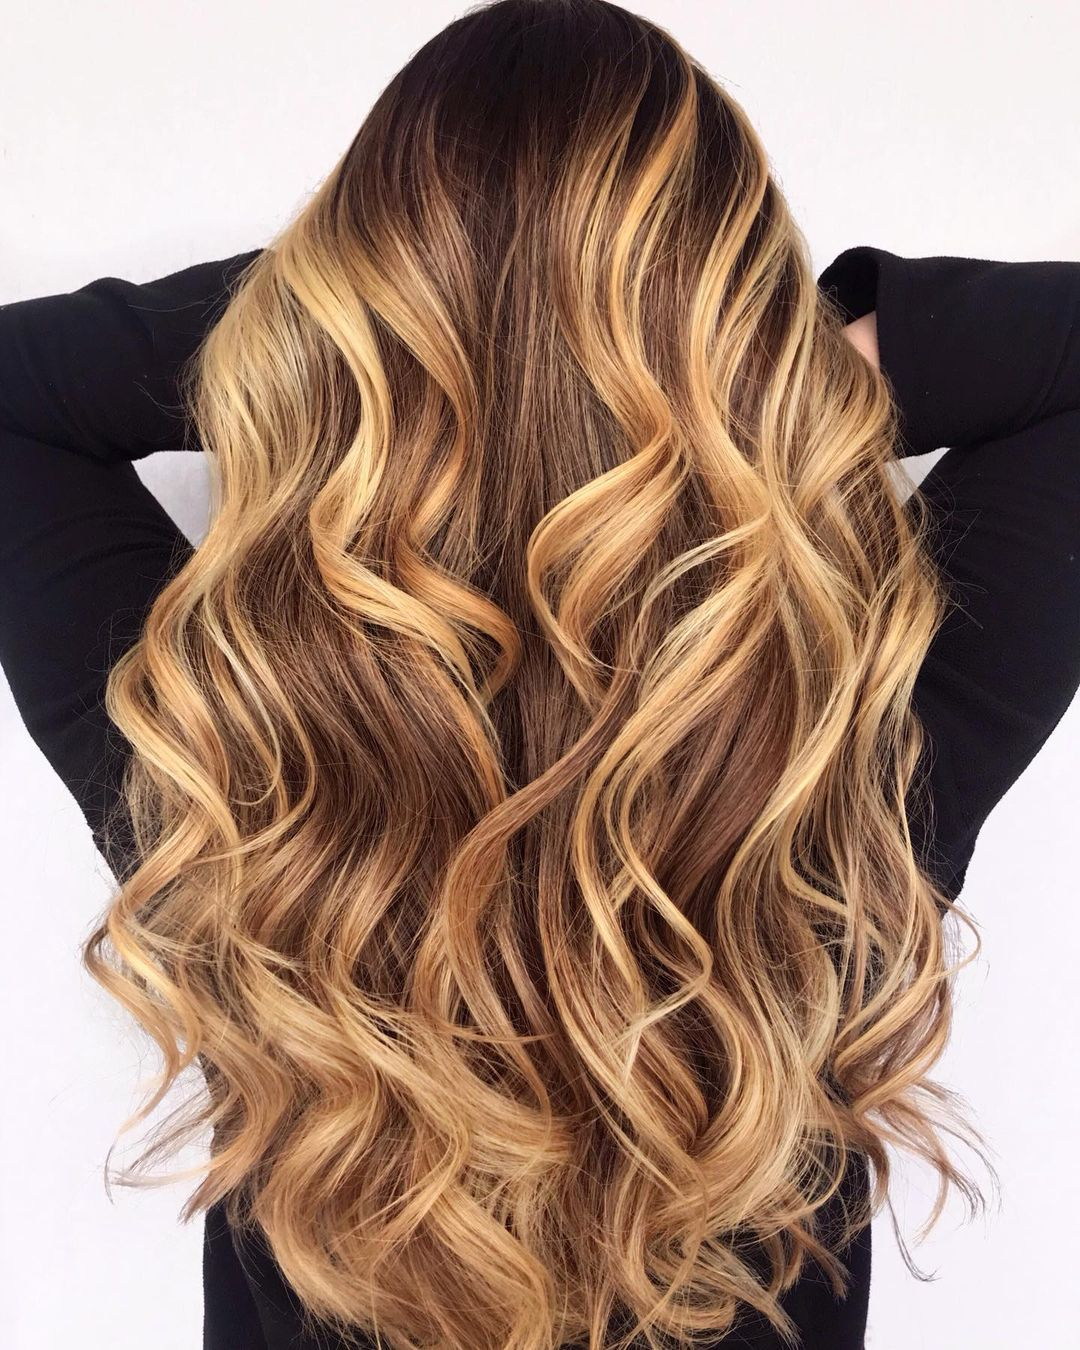 Long Hairstyle with Honey Blonde Ribbons